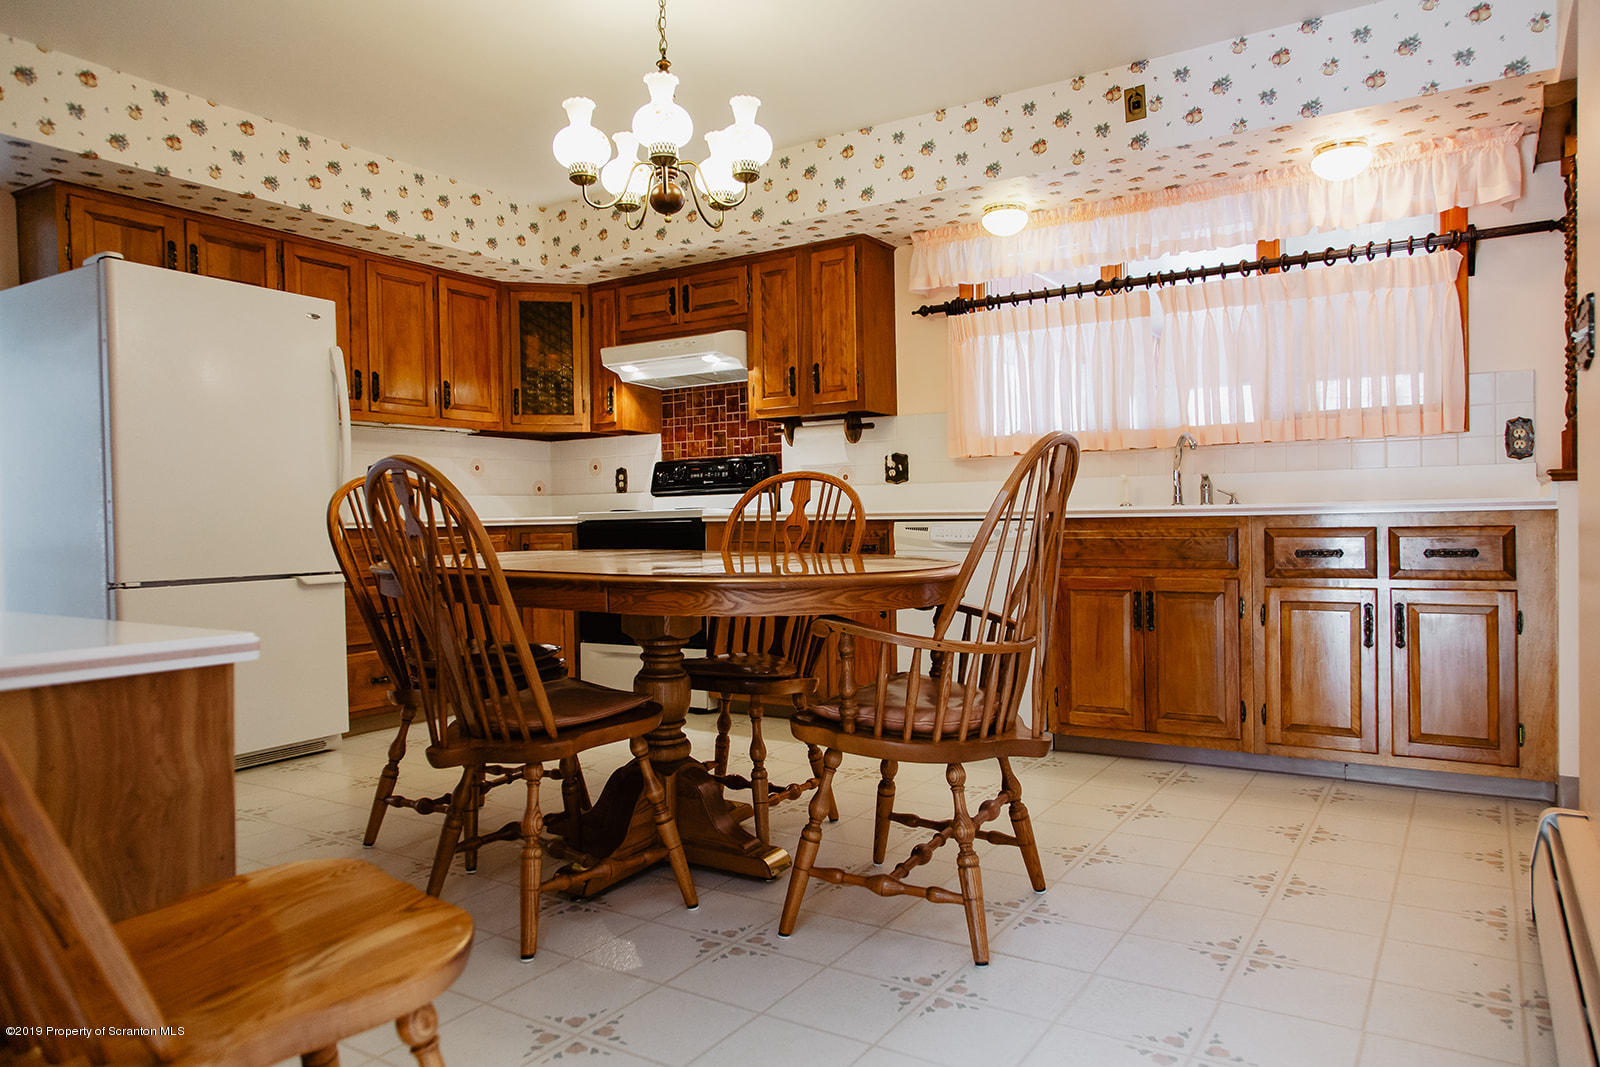 1274 Fords Pond Rd, Clarks Summit, Pennsylvania 18411, 3 Bedrooms Bedrooms, 6 Rooms Rooms,3 BathroomsBathrooms,Single Family,For Sale,Fords Pond,19-1061